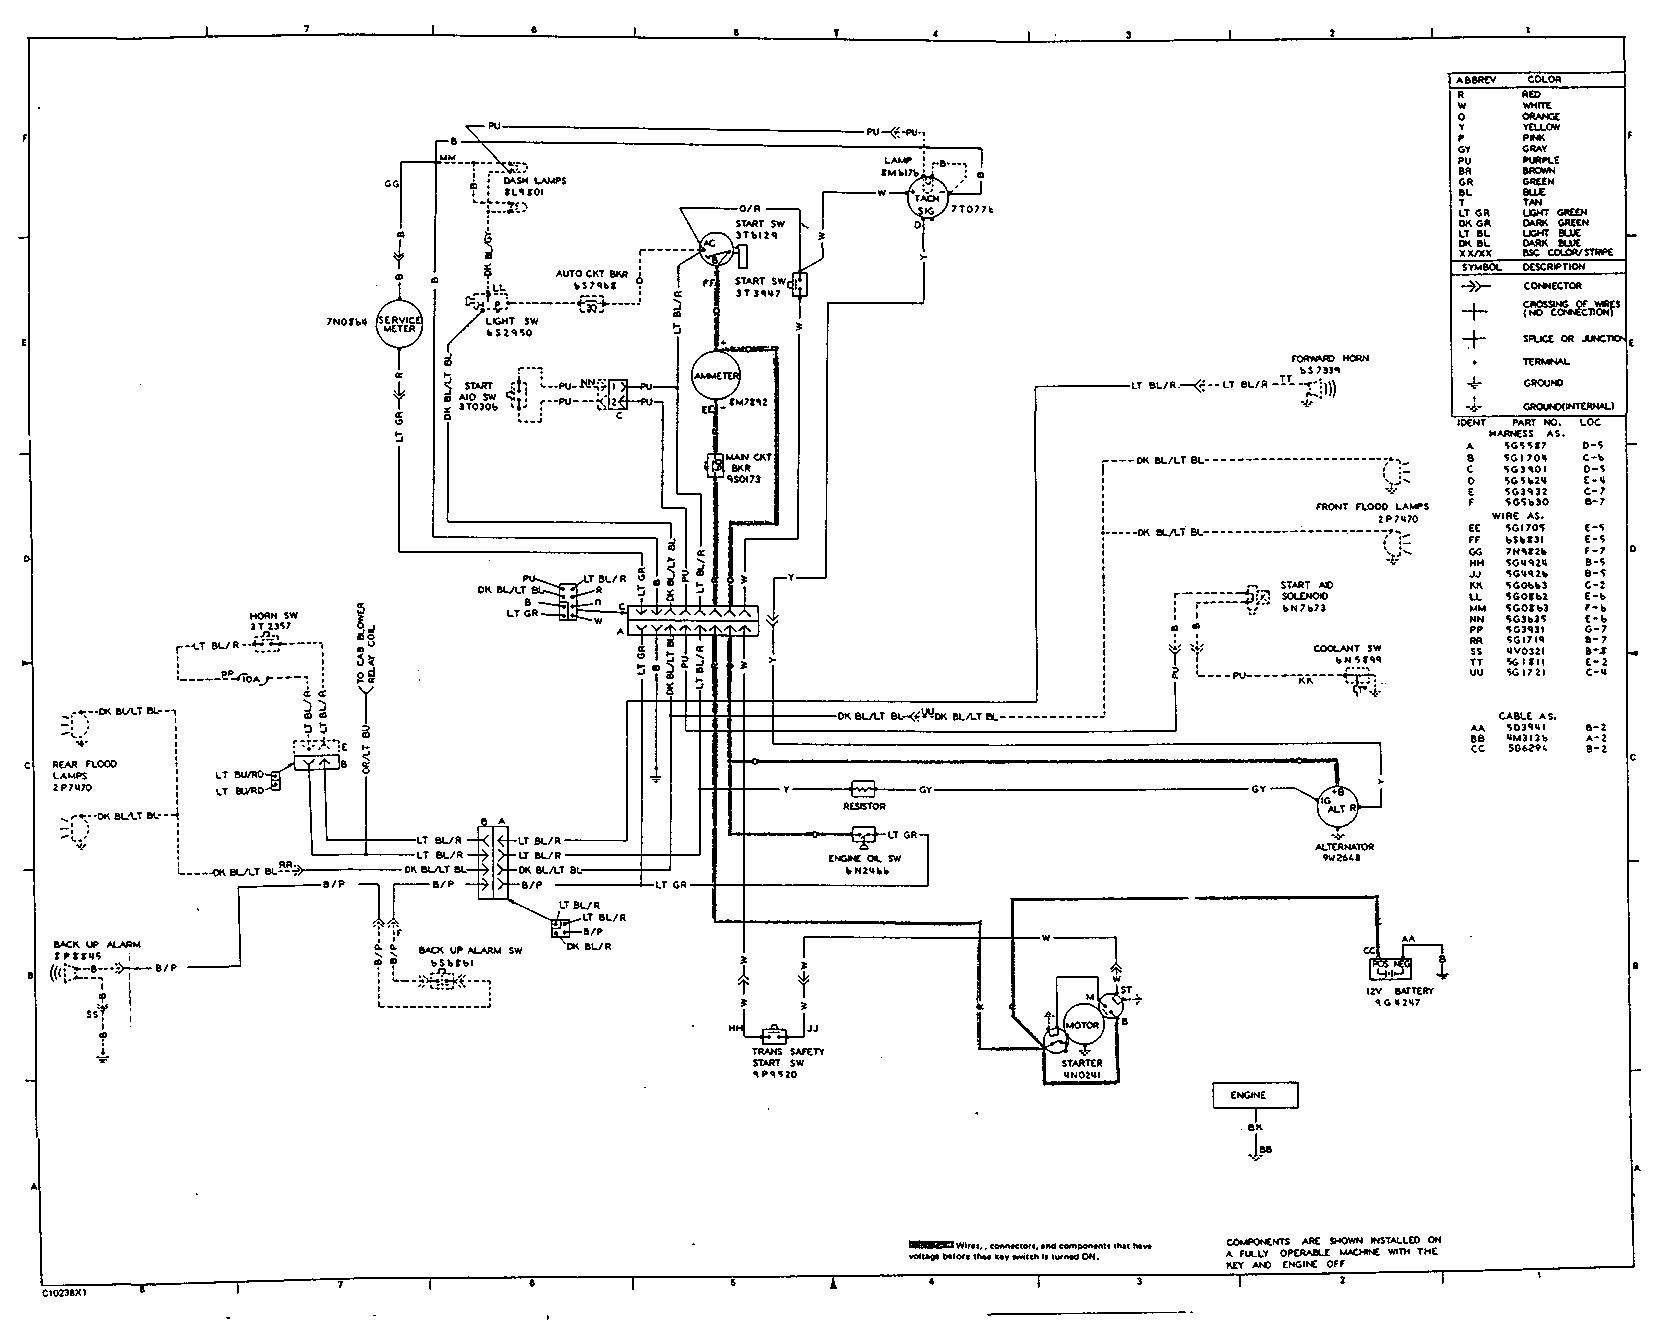 [DIAGRAM] 1971 Corvette Wiper Motor Wiring Diagrams FULL